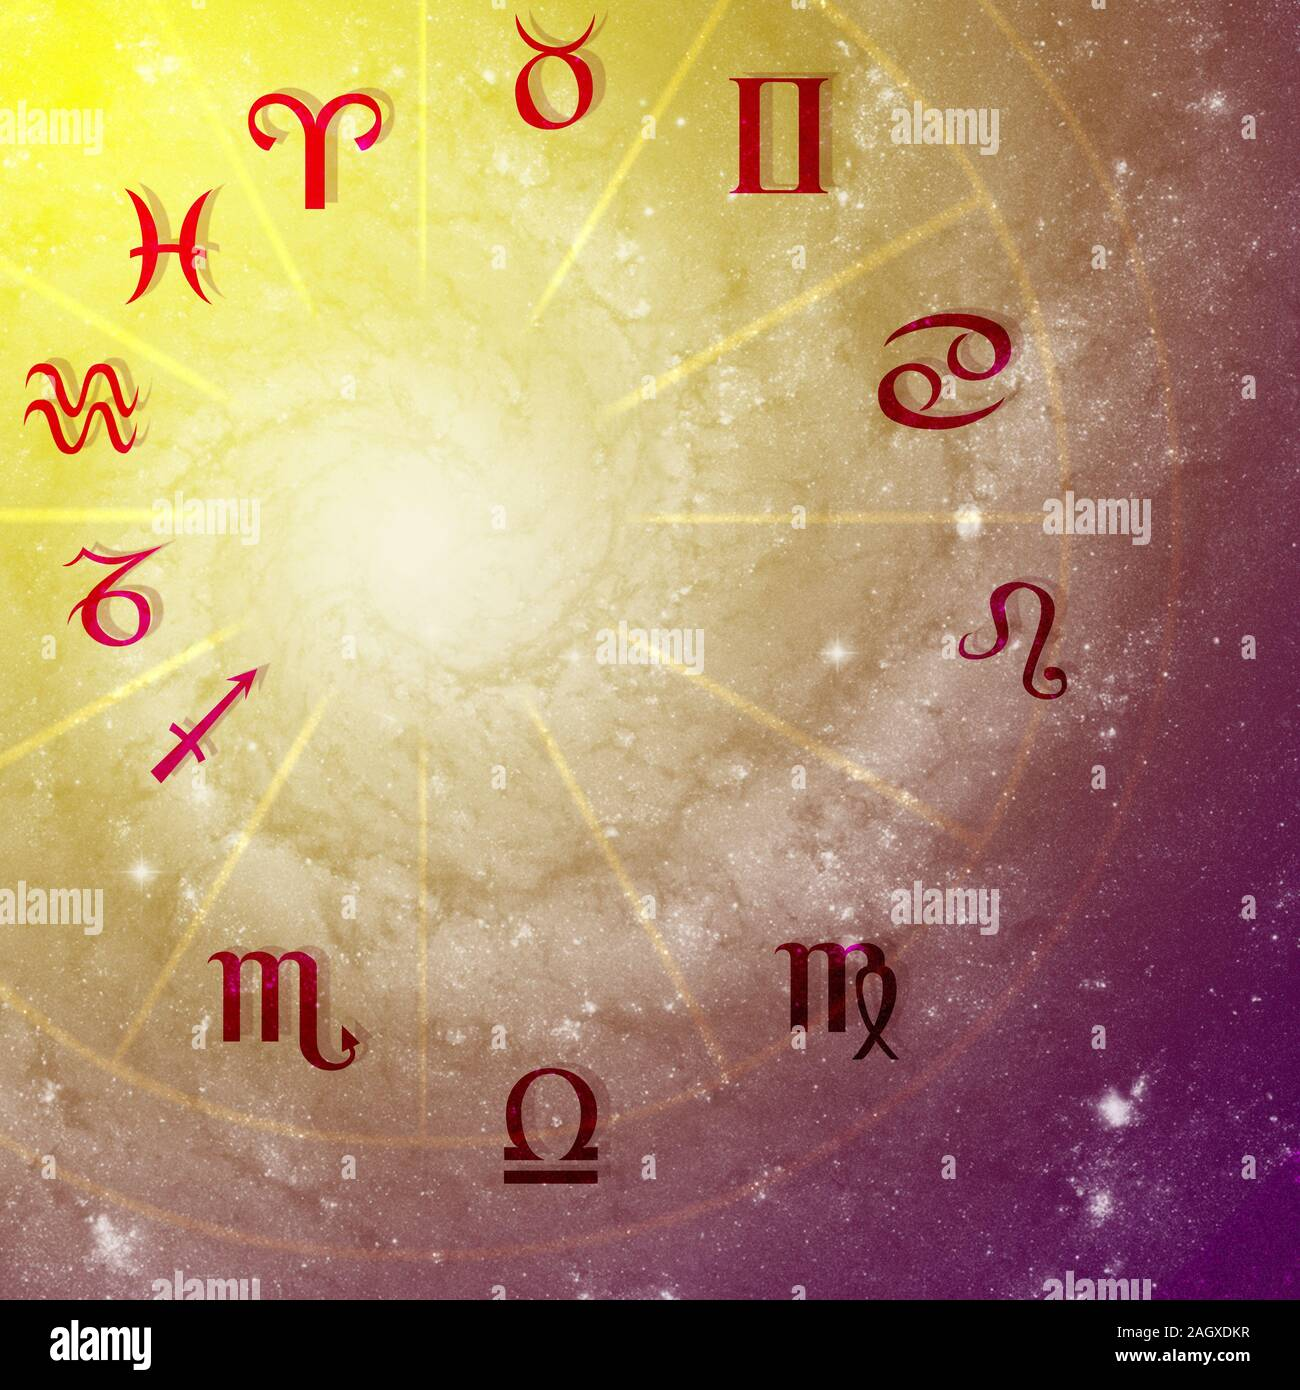 Illustration Of Astrology Themes Twelve Signs Of The Zodiac On Bright Abstract Background Space For Text Stock Photo 337412987 Alamy